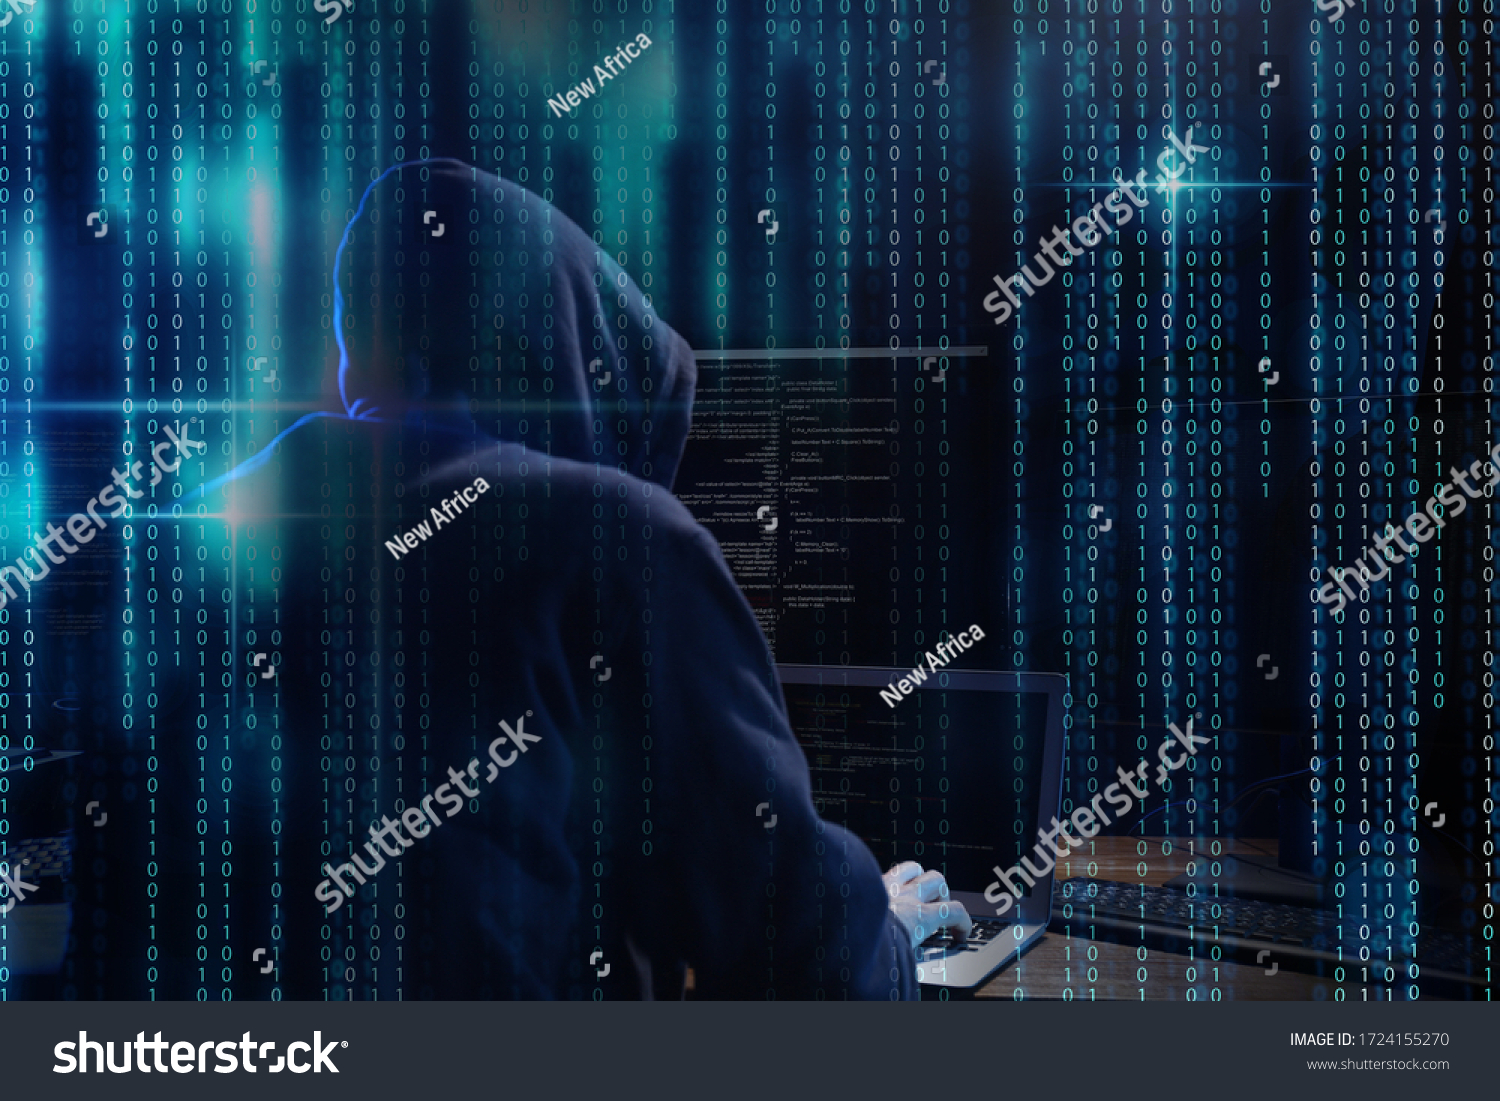 Cyber criminal hacking system at table, digital binary code on foreground #1724155270